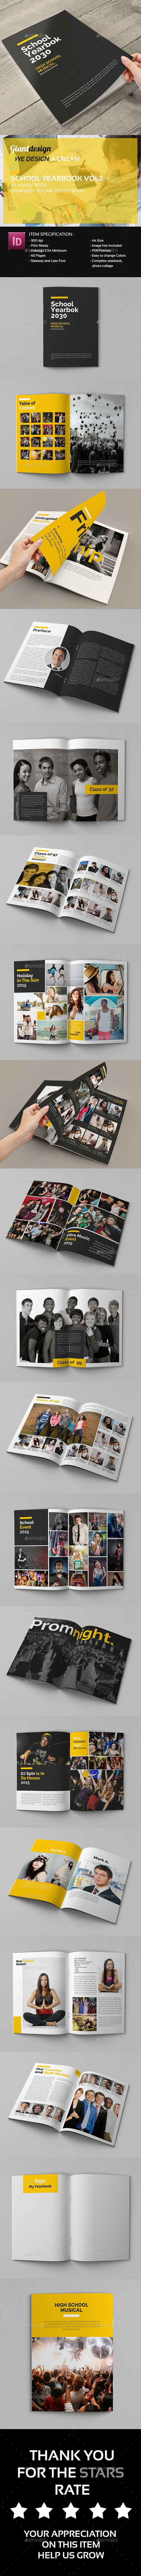 58 best Graduation Design images on Pinterest | Graduation ideas ...